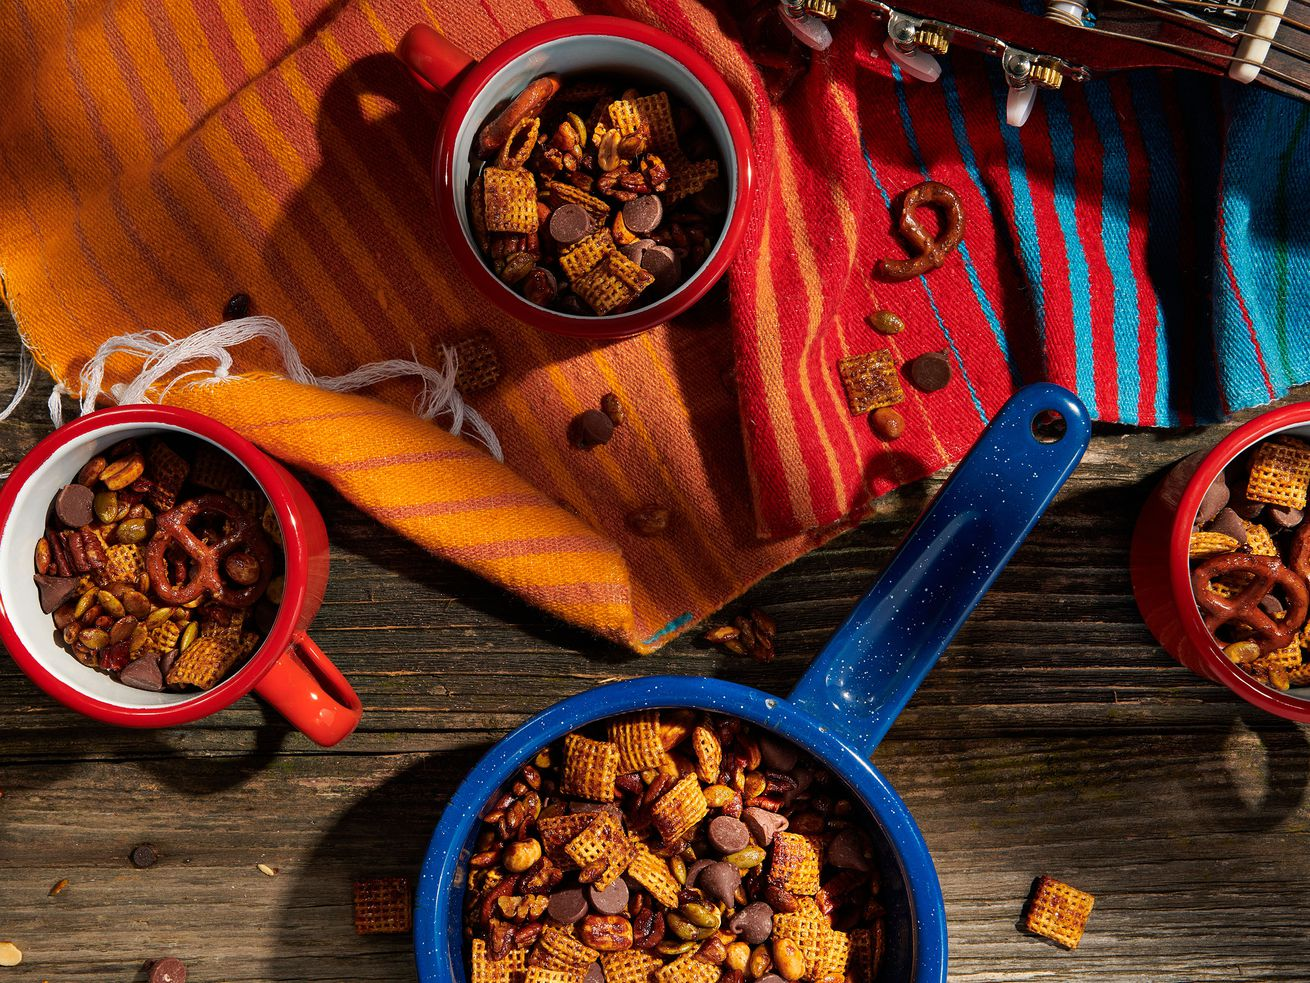 Tin camping cups filled with trail mix as seen from above on a picnic table, with colorful napkins alongside.